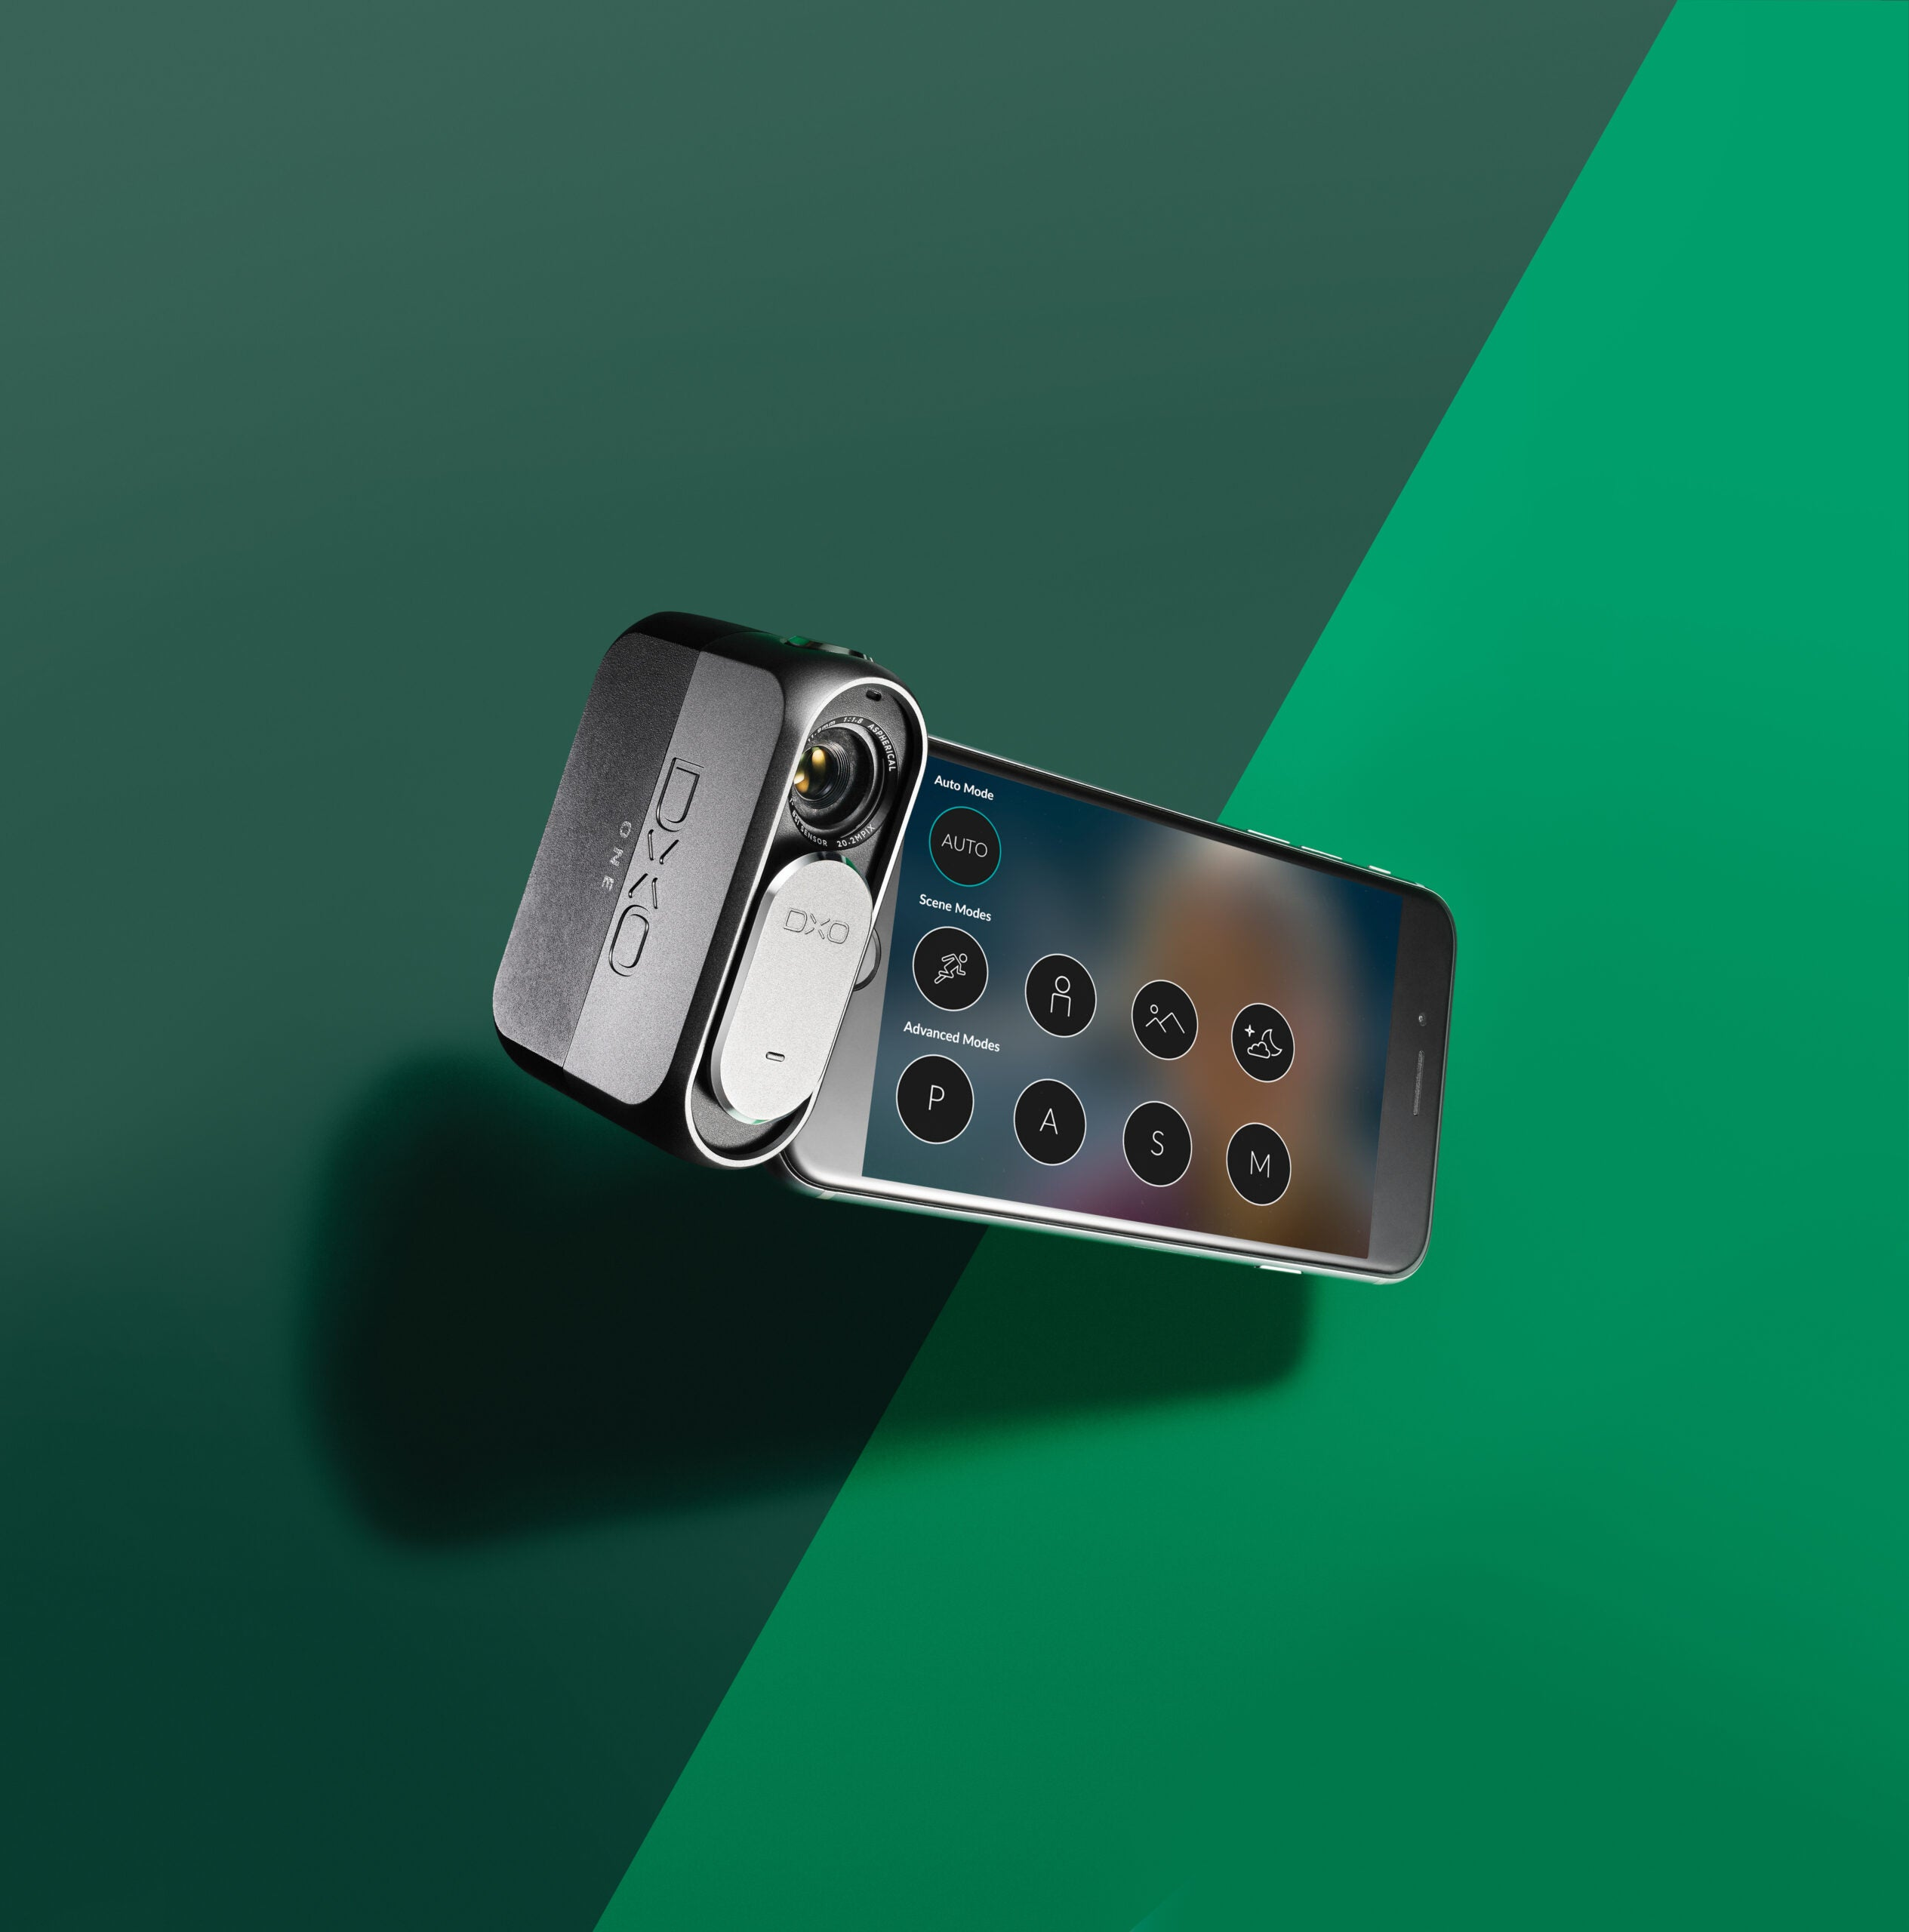 Clip A Pro Camera To Your IPhone